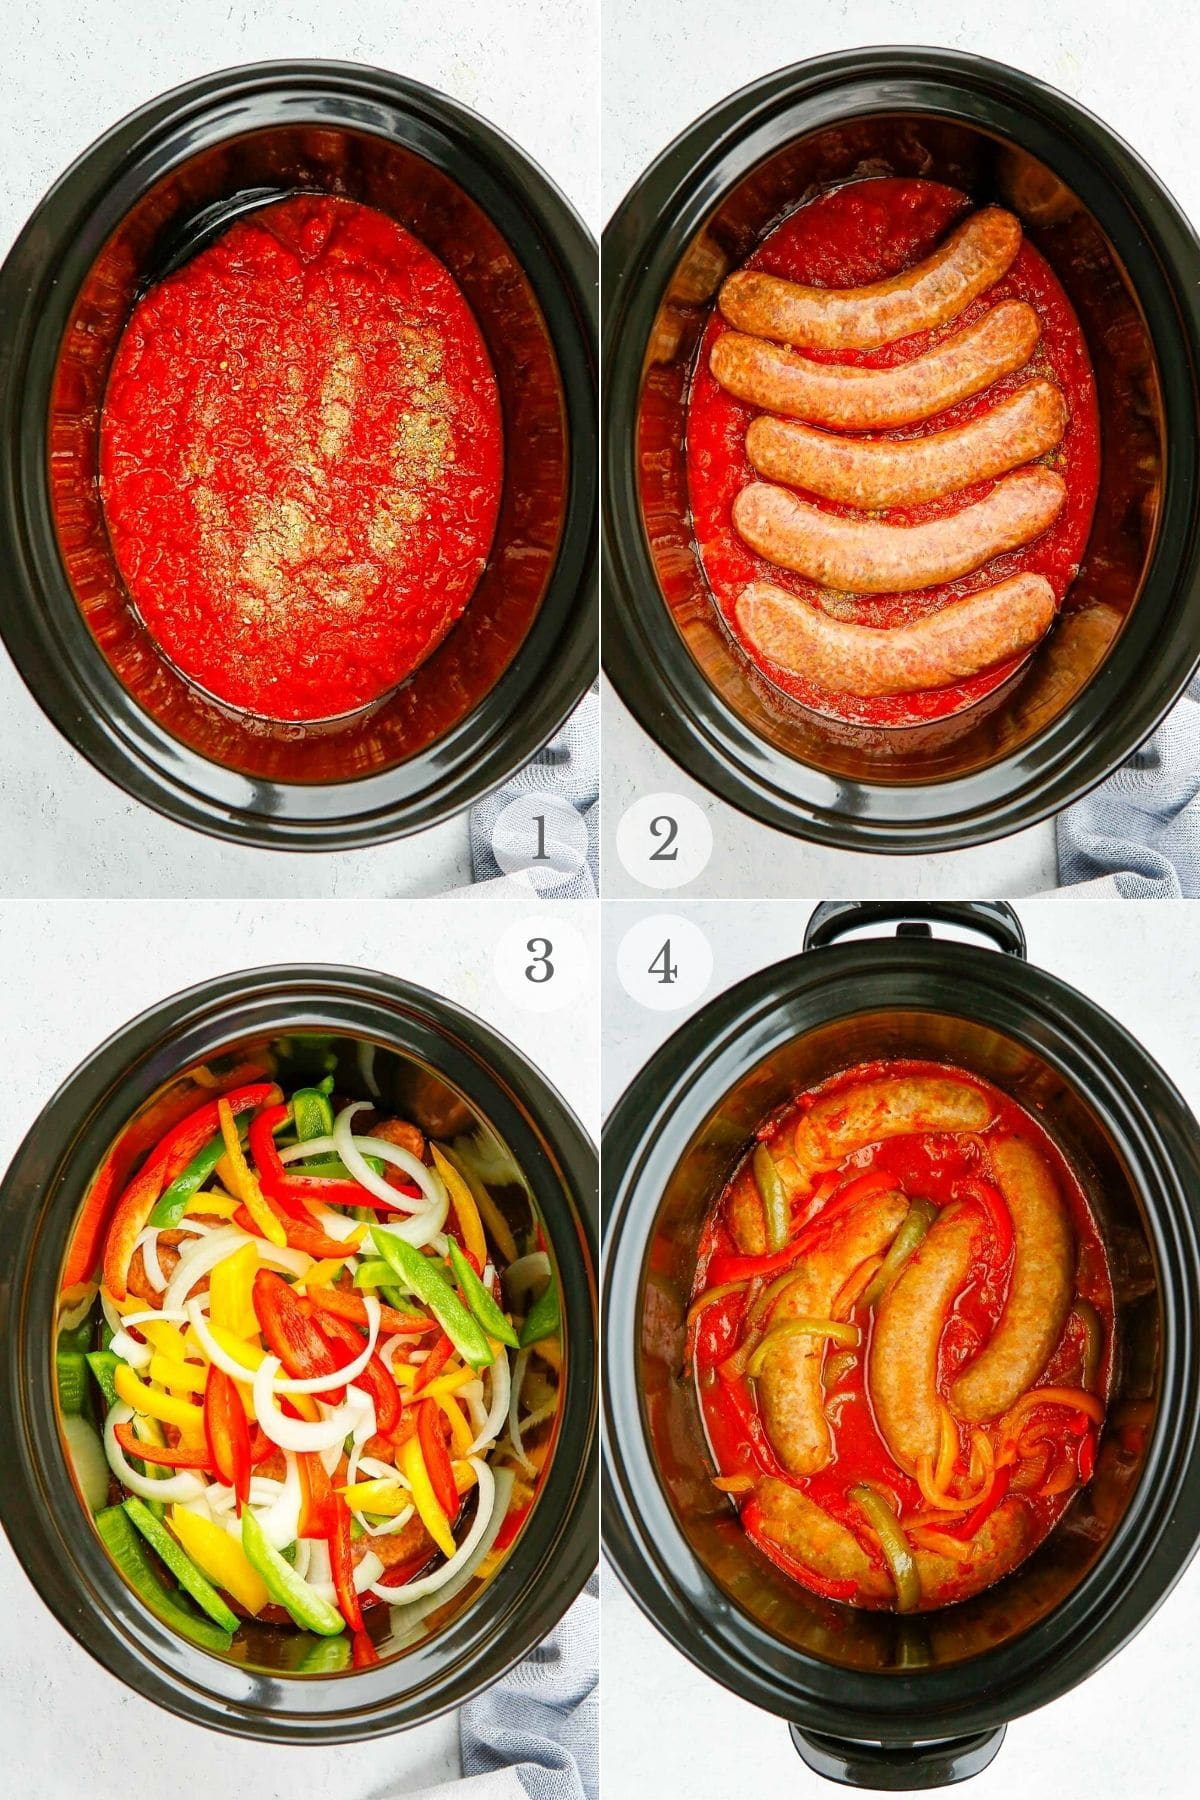 sausage and peppers recipe steps 1-4